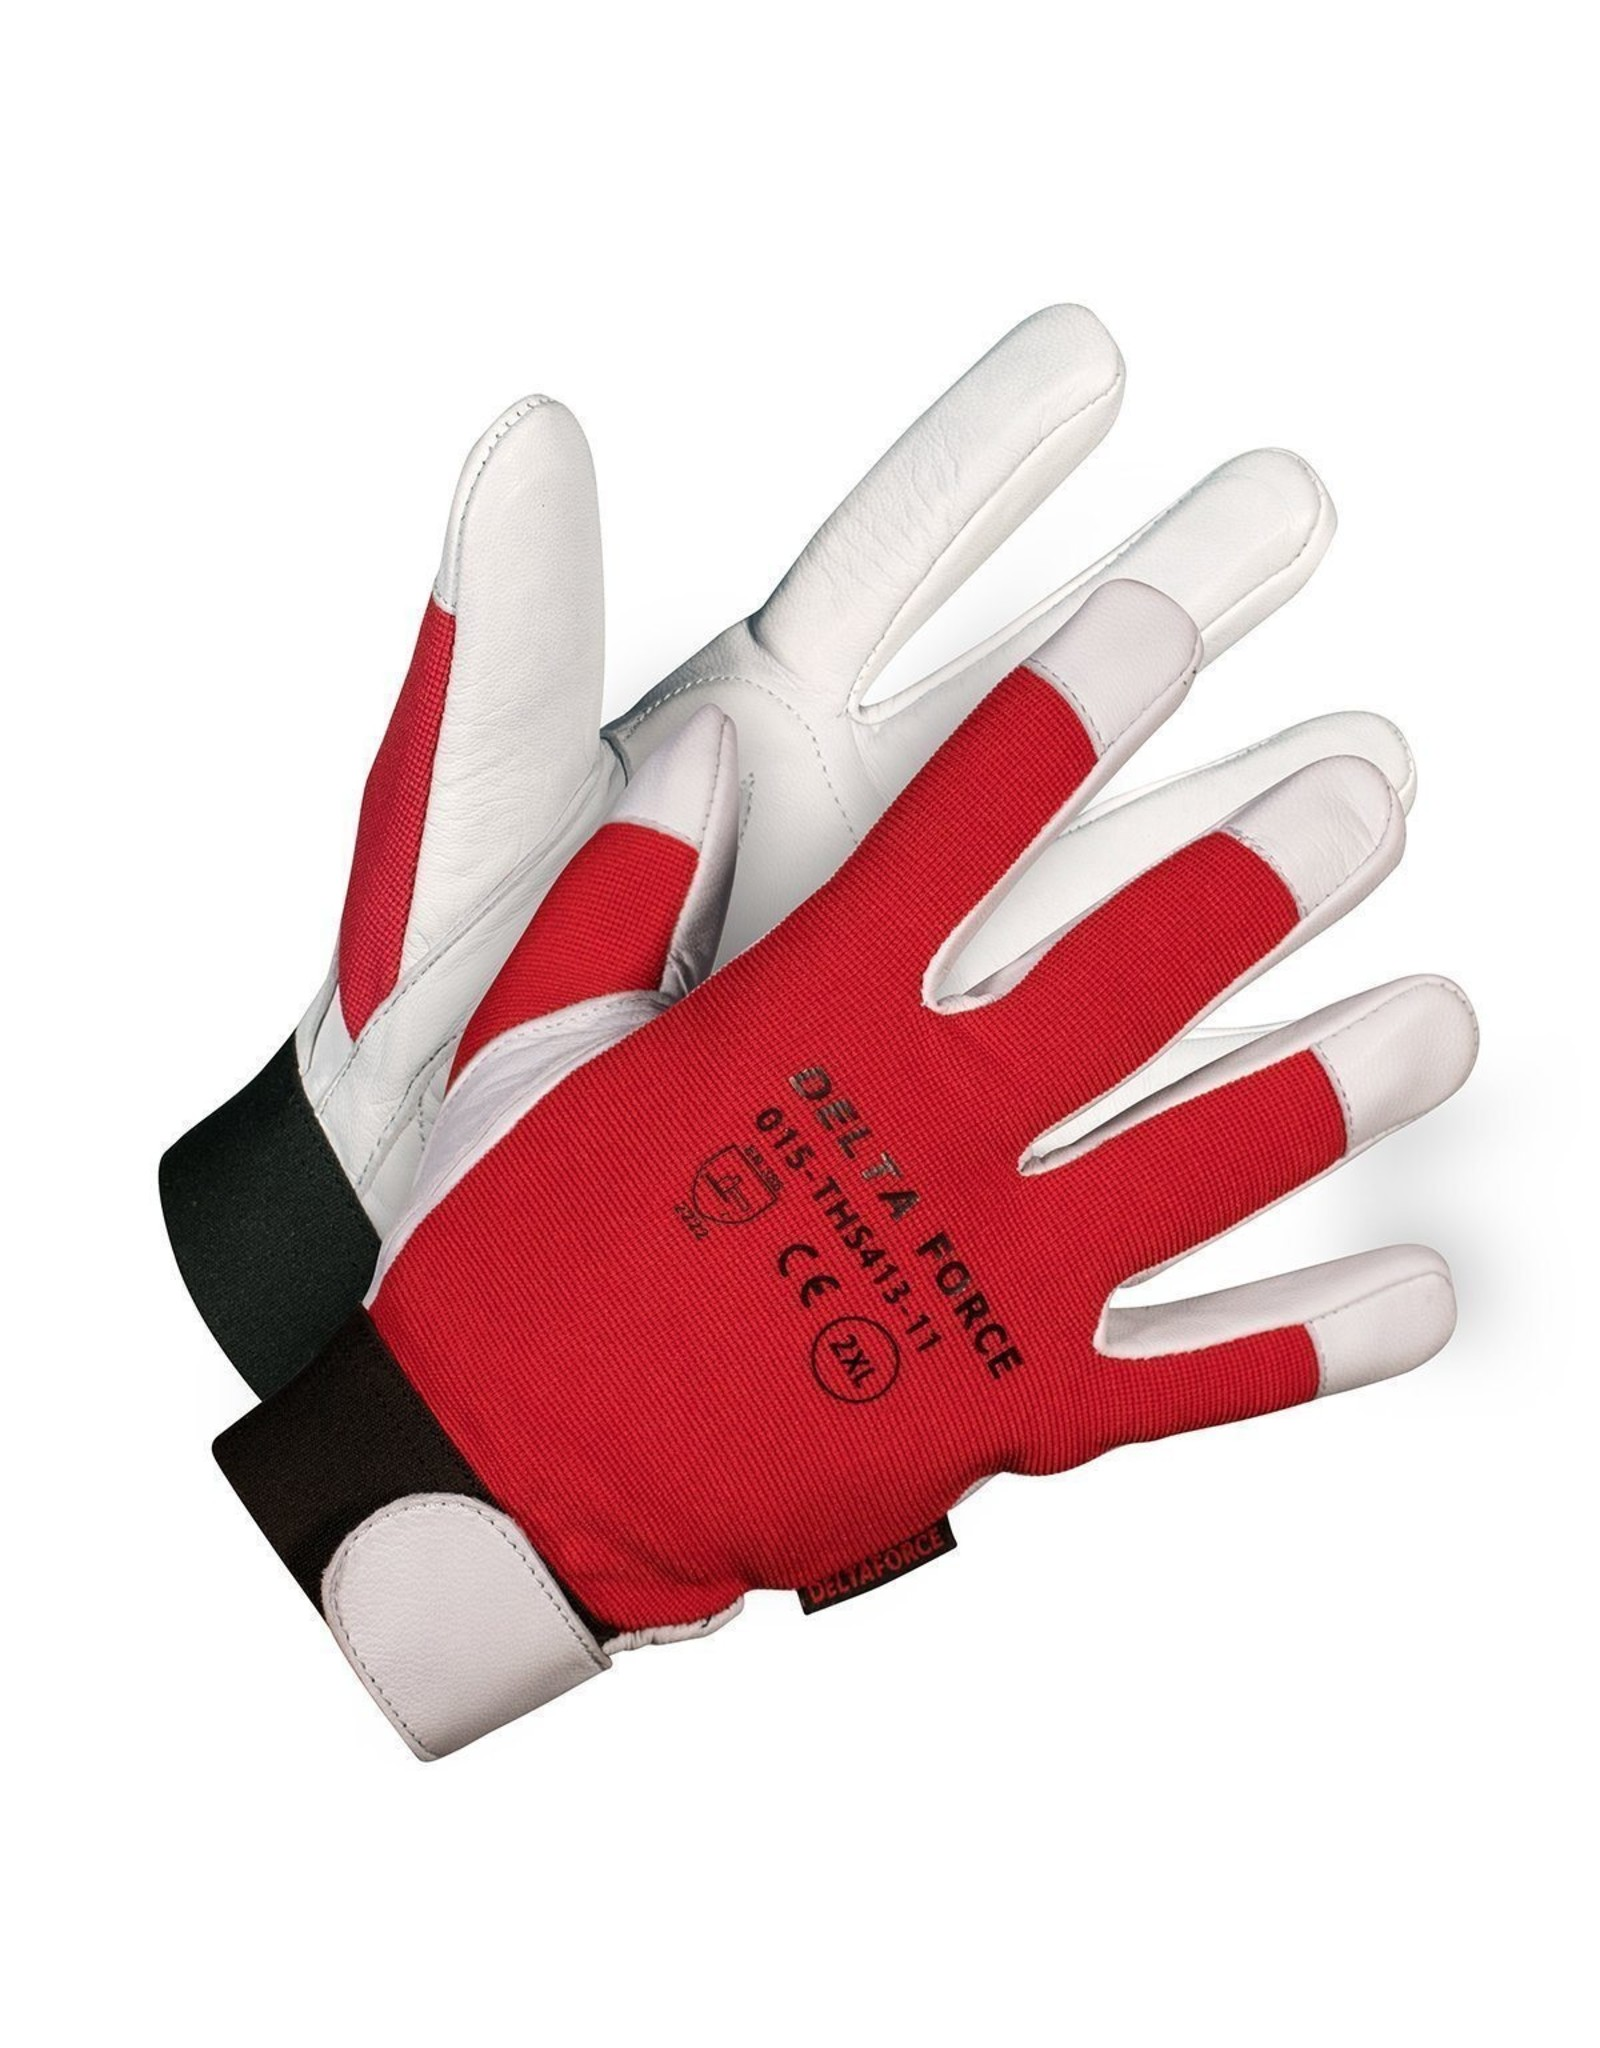 Delta Force Vibration Dampening Gloves